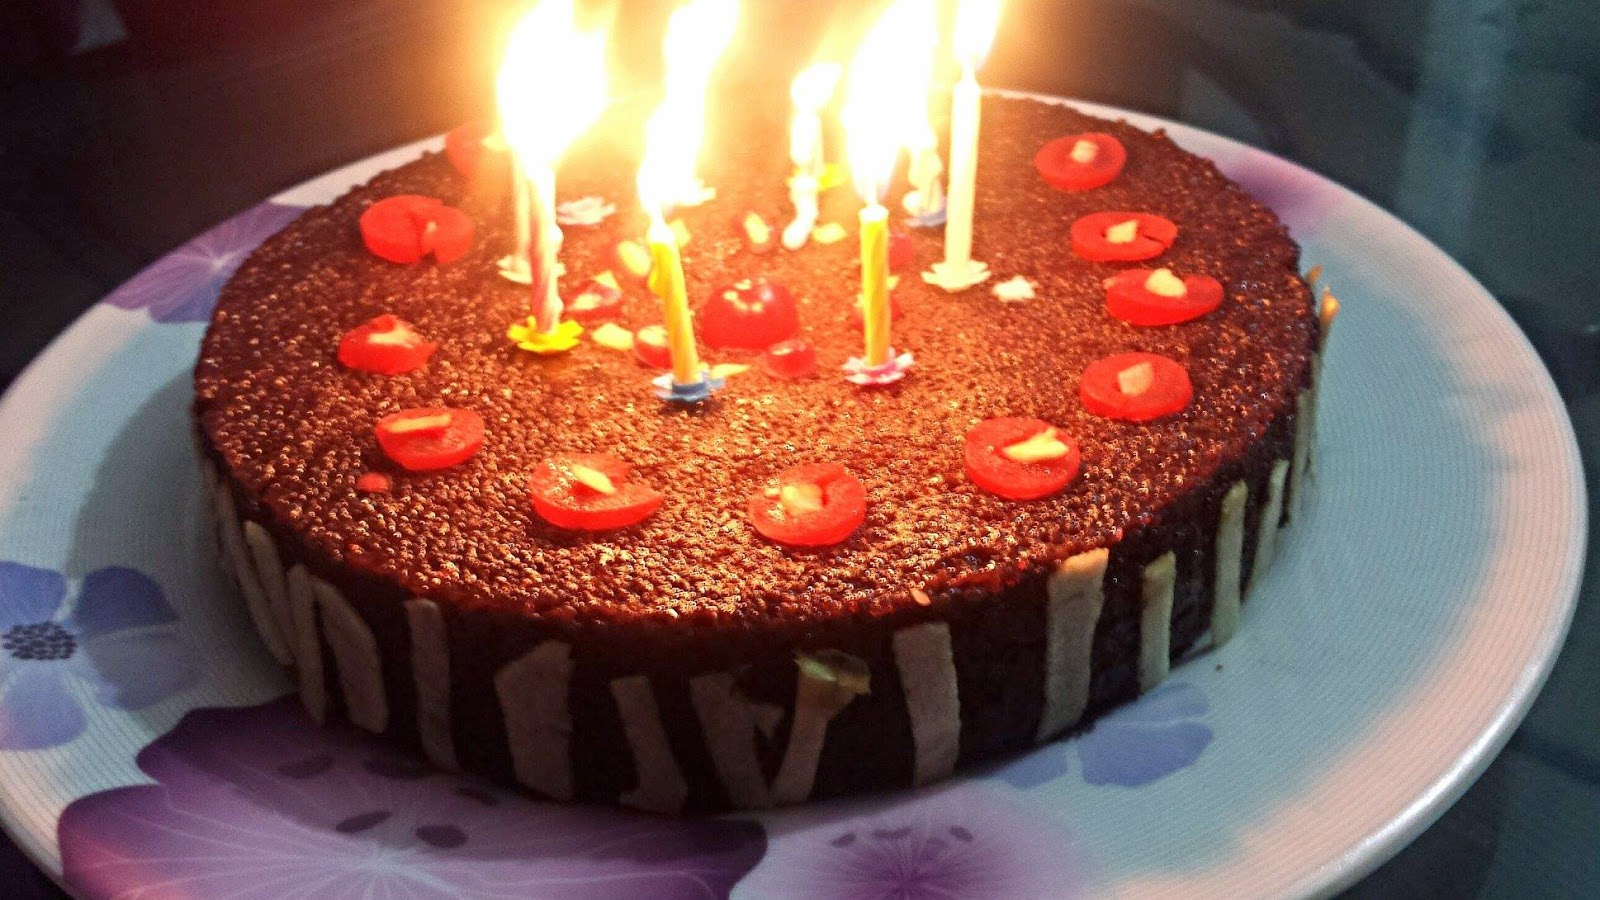 Homemade Cake Images : Happy birthday homemade cake picture, photos, image ...